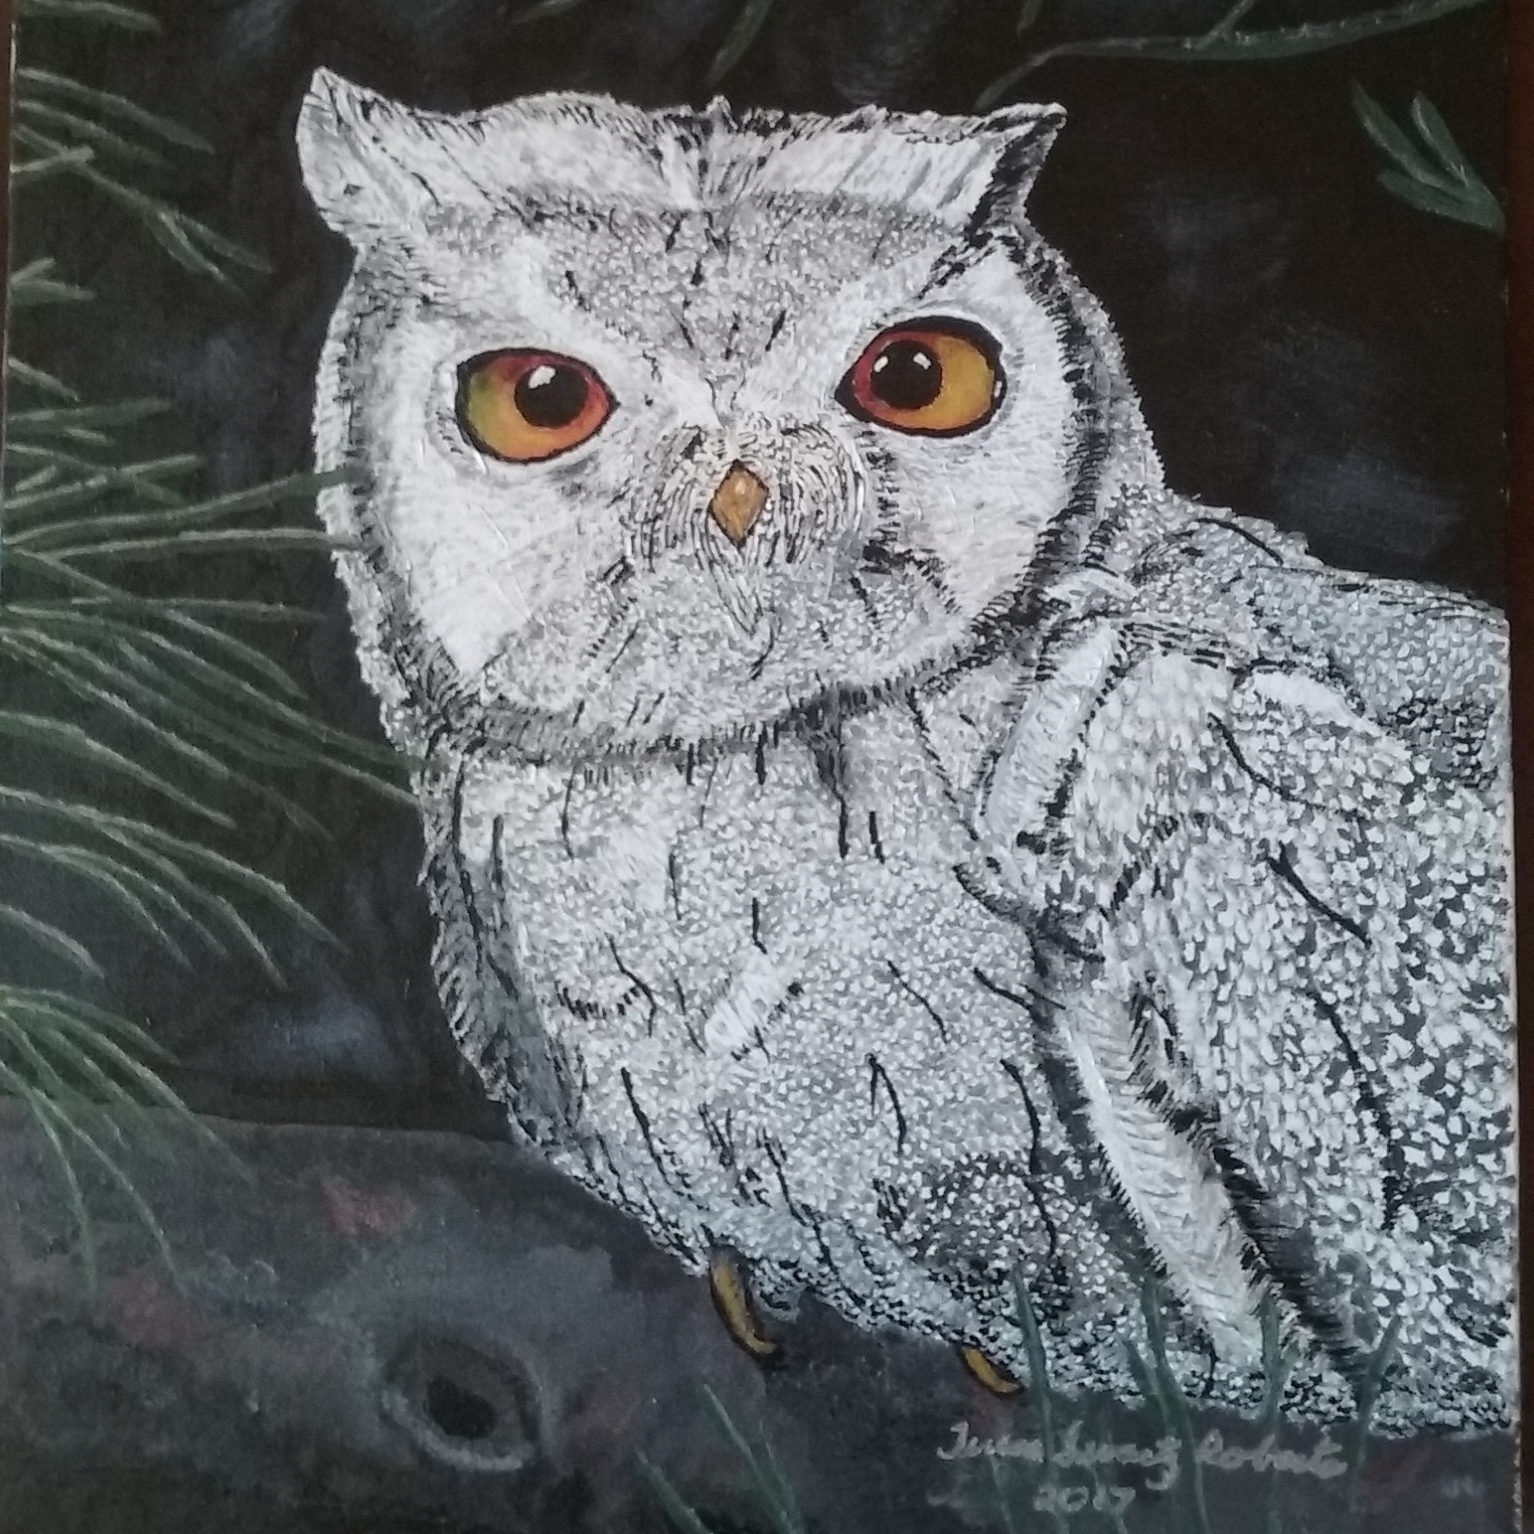 My painting of an owl resembles my wide-awake night eyes.